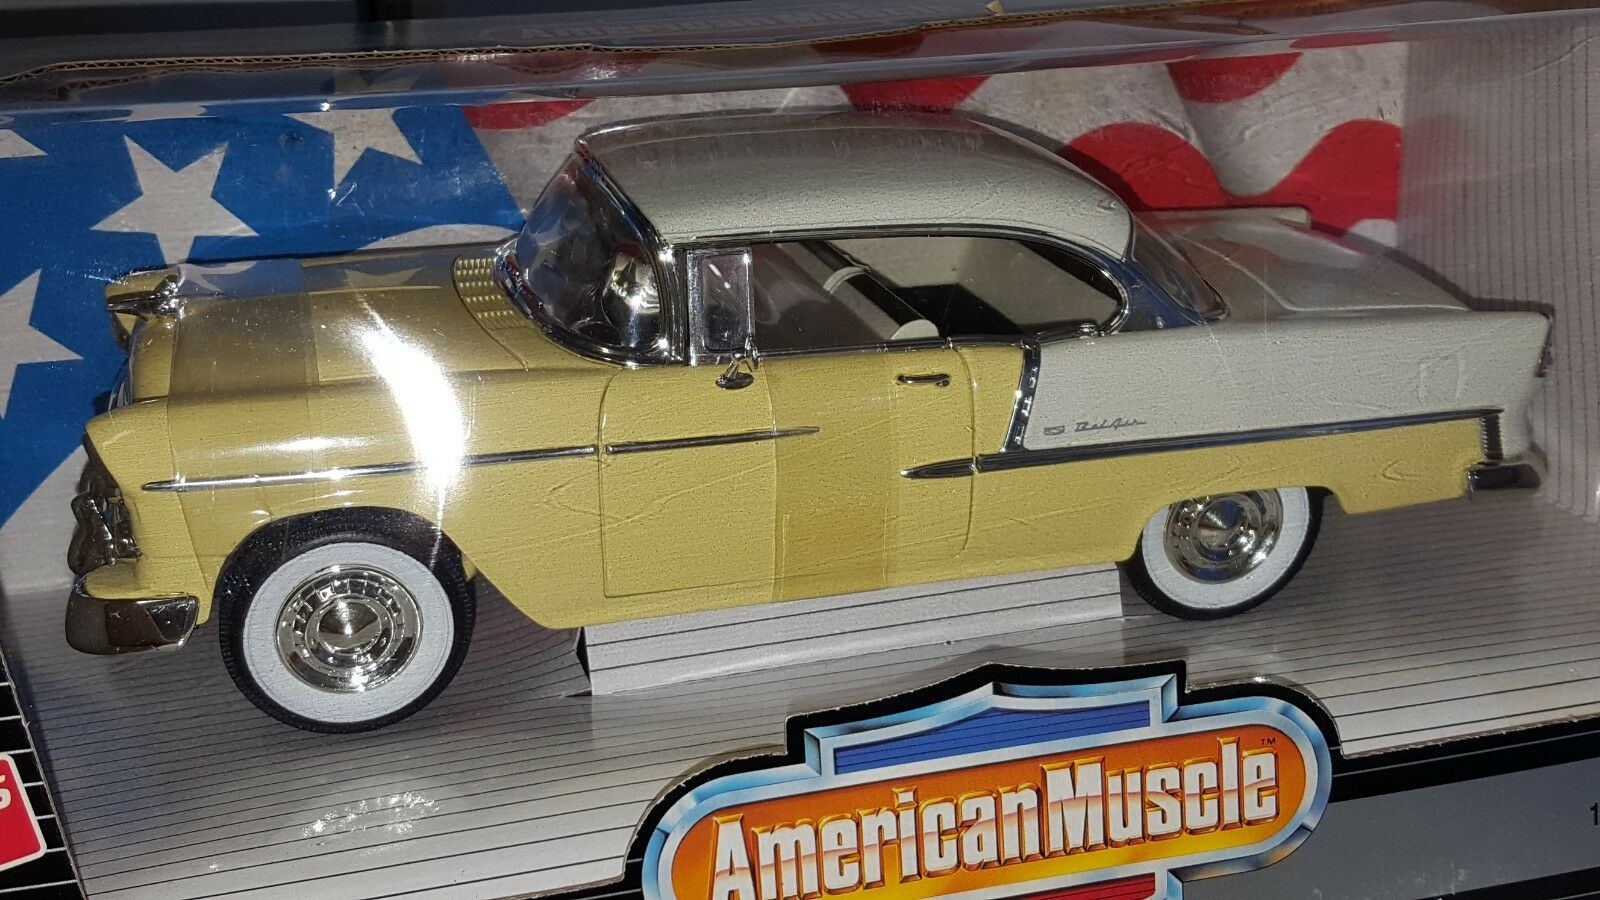 1 18 ERTL AMERICAN MUSCLE 1955 CHEVROLET BEL AIR YELLOW & WHITE od